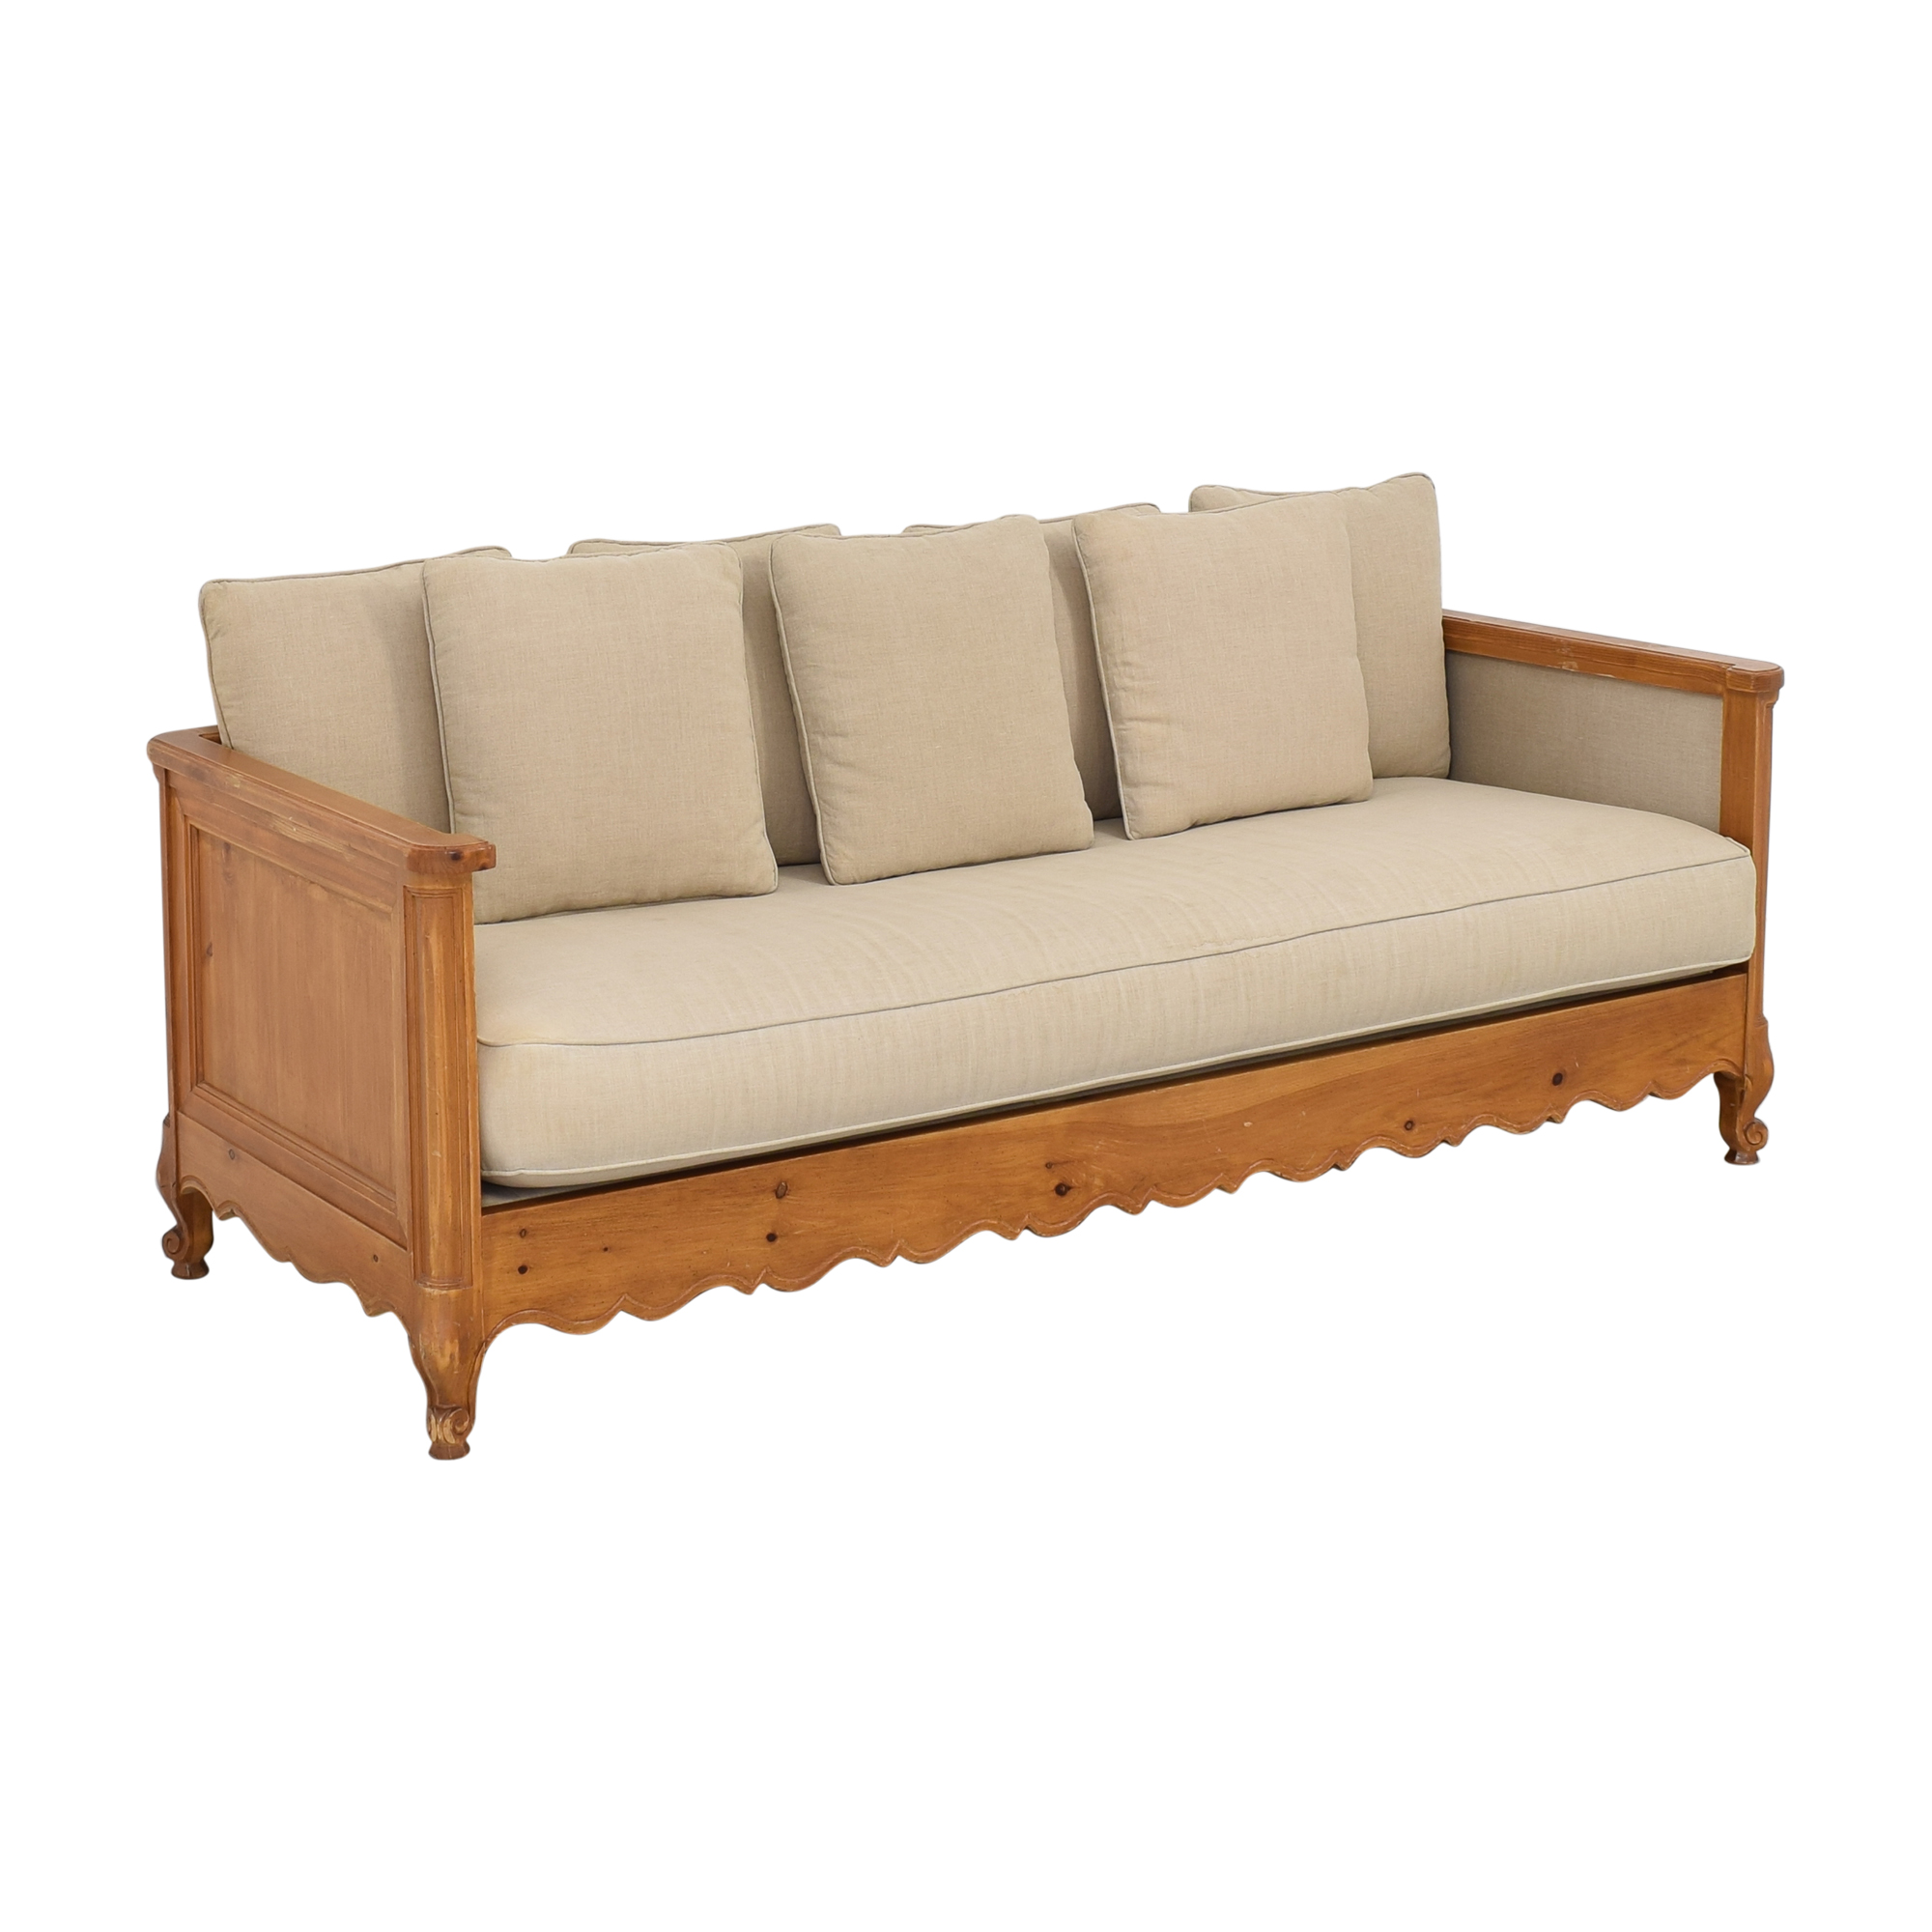 Wood Frame Sofa nj